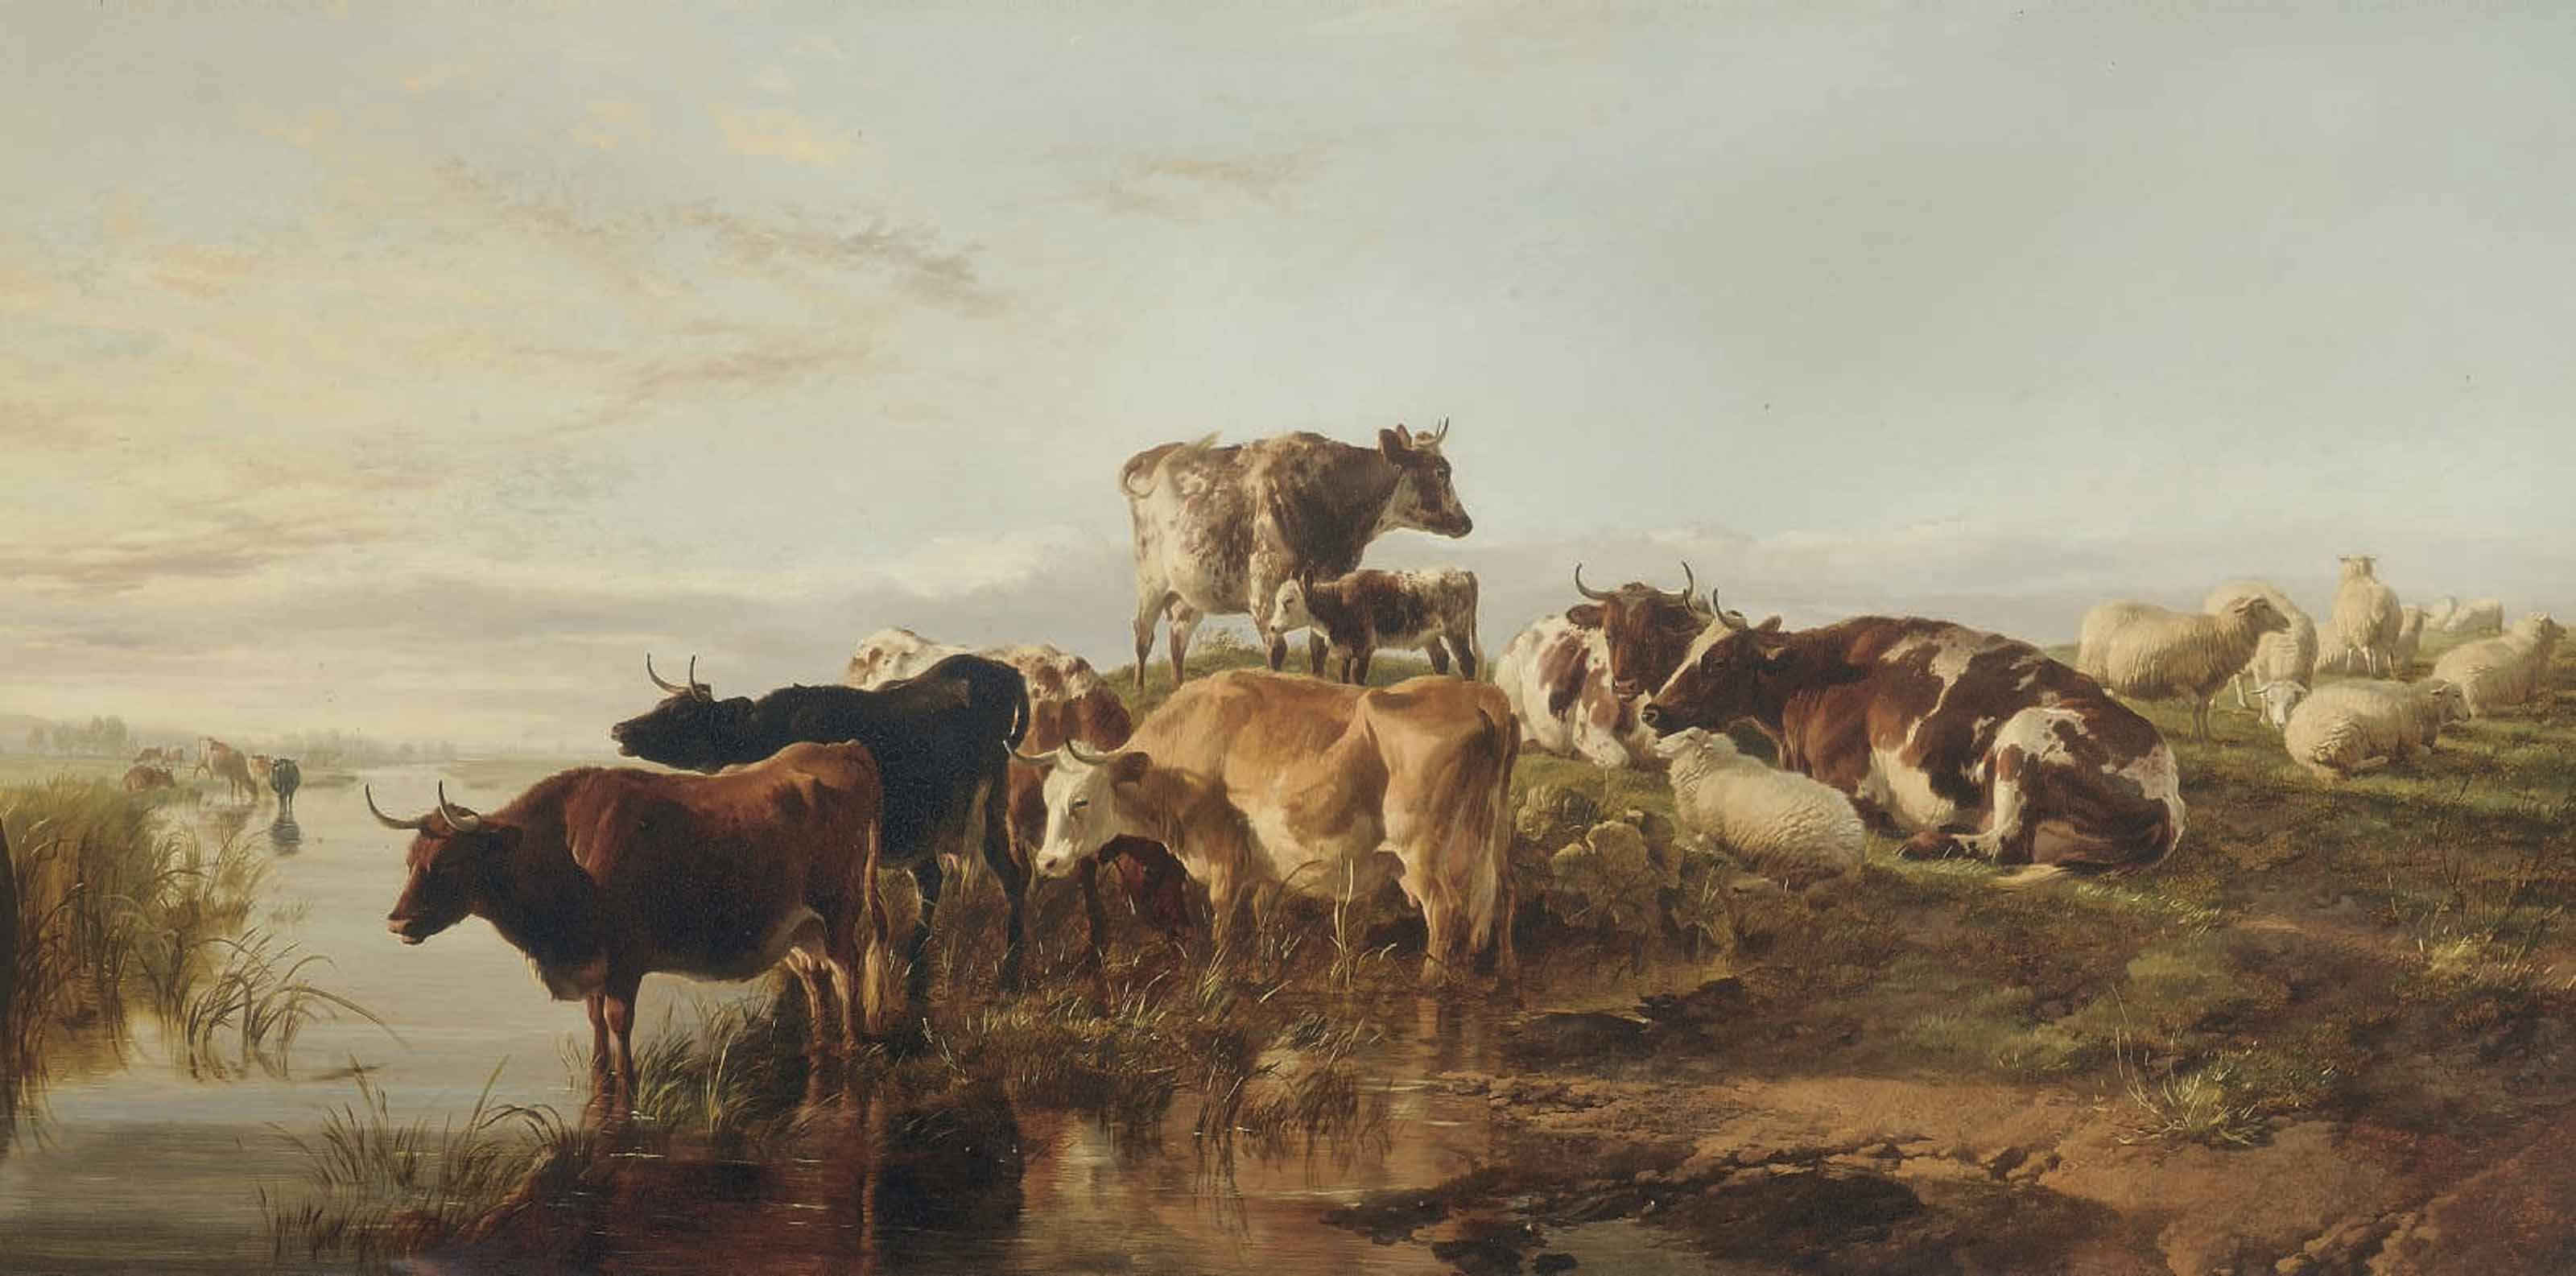 Cattle and sheep near a river